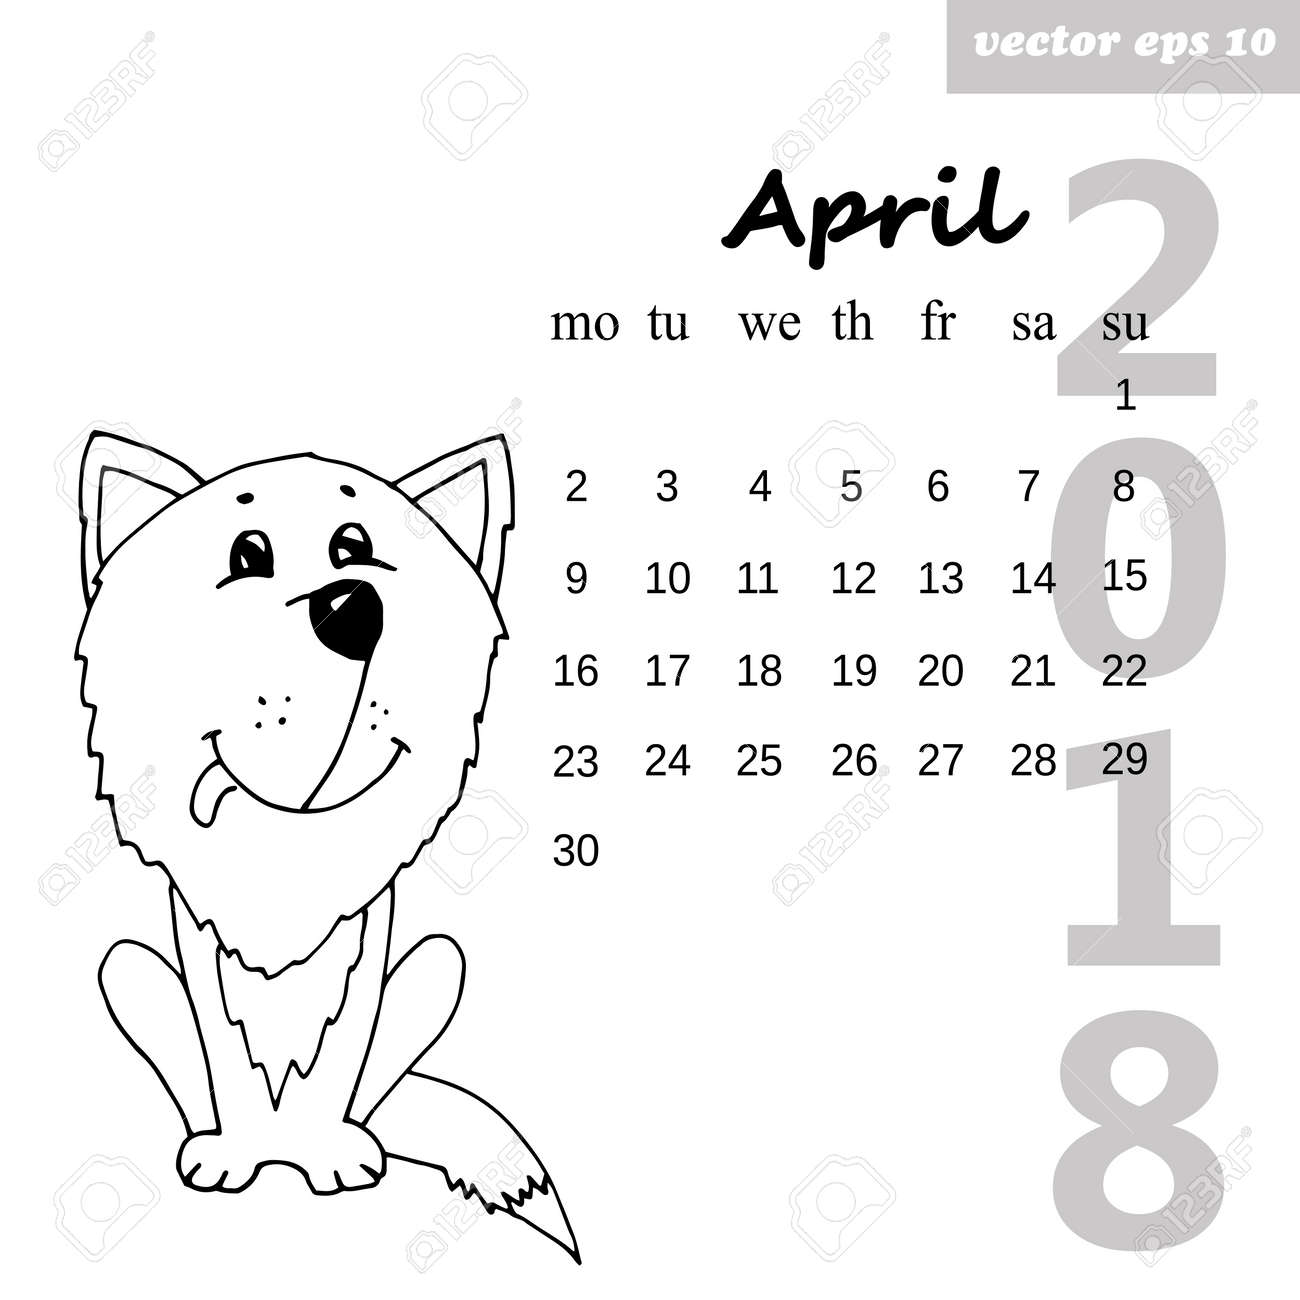 month april 2018 calendar for the next coming year hand drawn illustration element